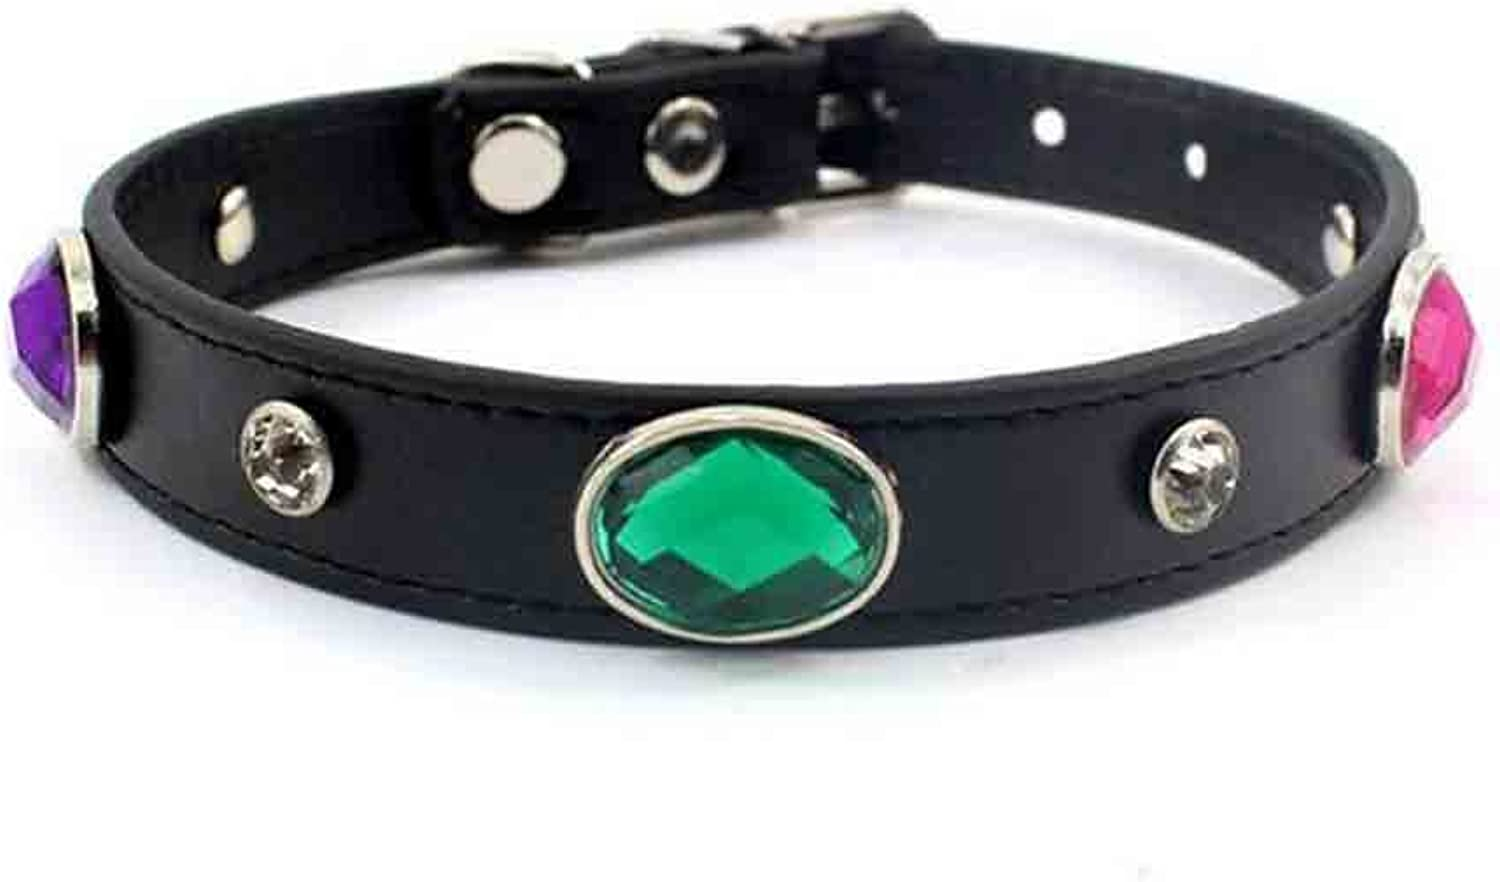 Black Leather Soft PU Collar with Rhinestone colorful Diamond Stones for Medium Size Dogs, Neck Size 10.6 12.6 , Adjustable